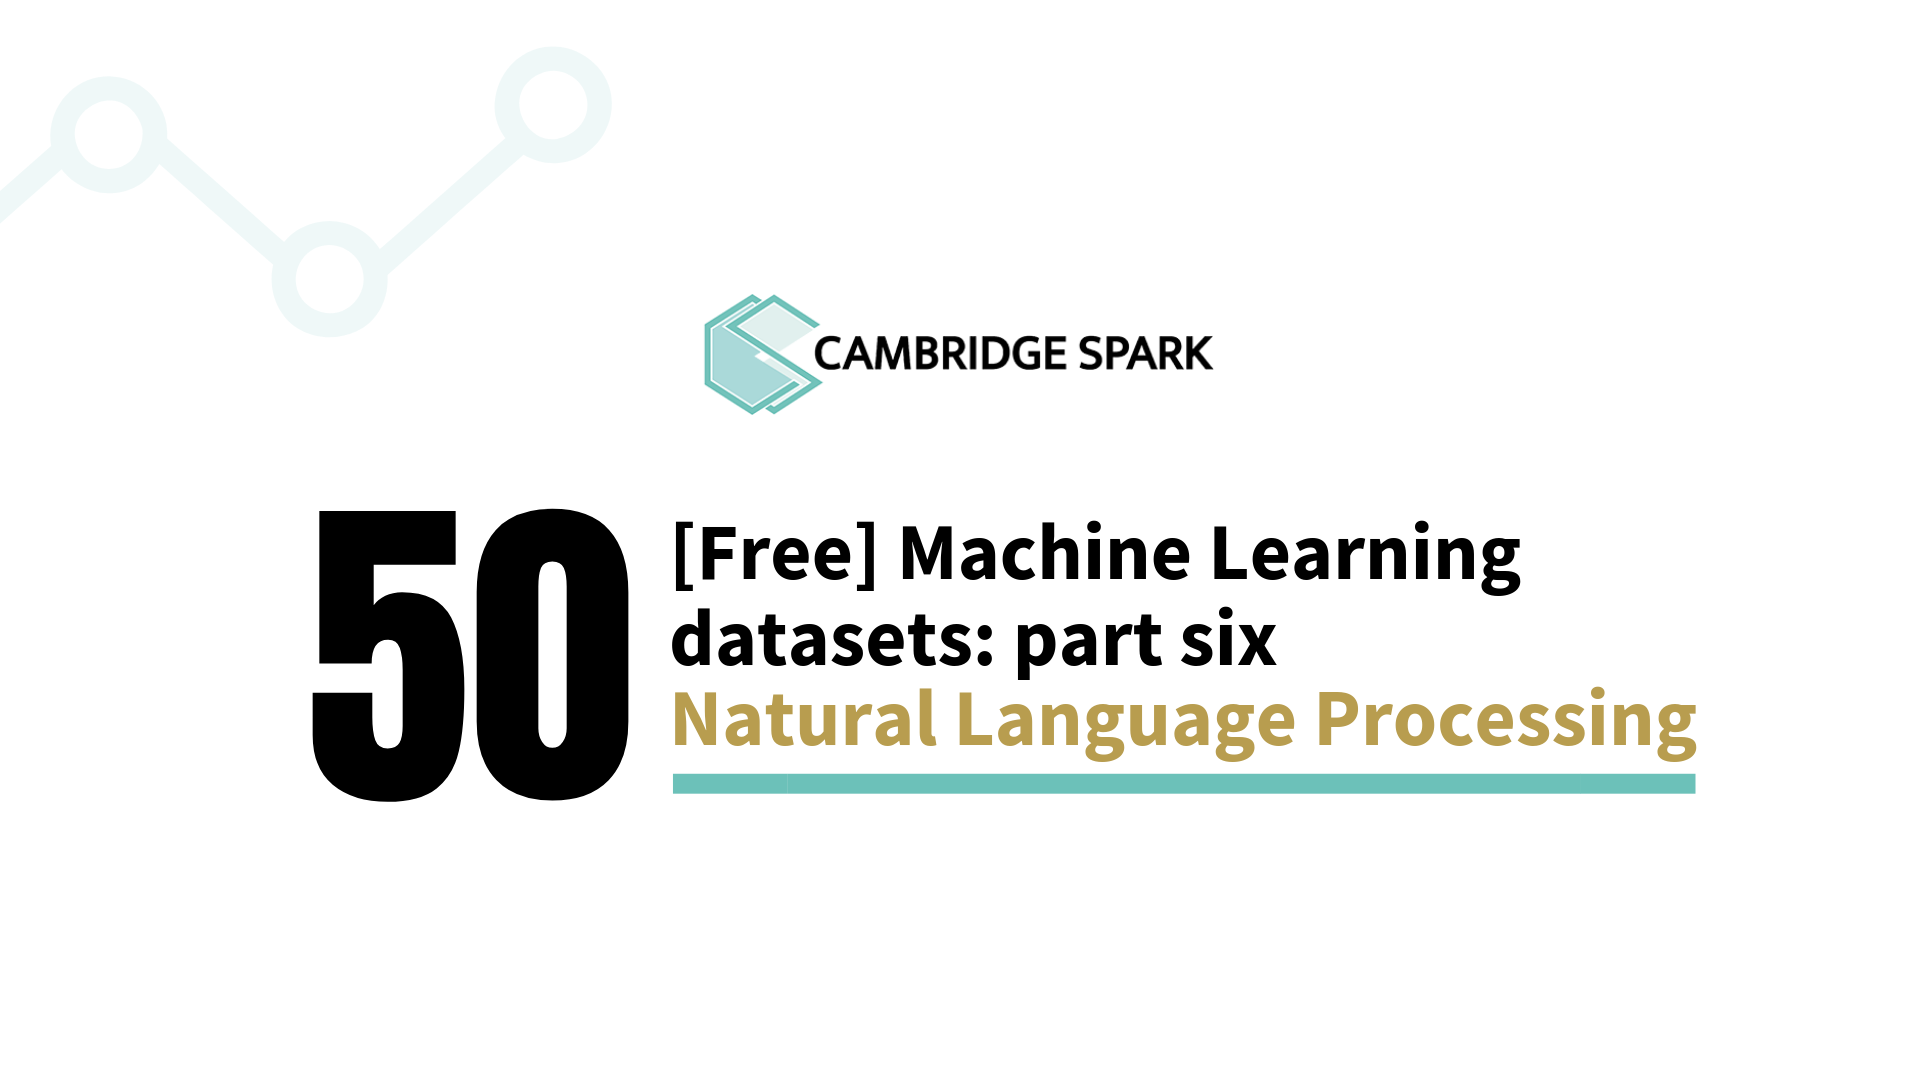 50 Free Machine Learning Datasets: Natural Language Processing